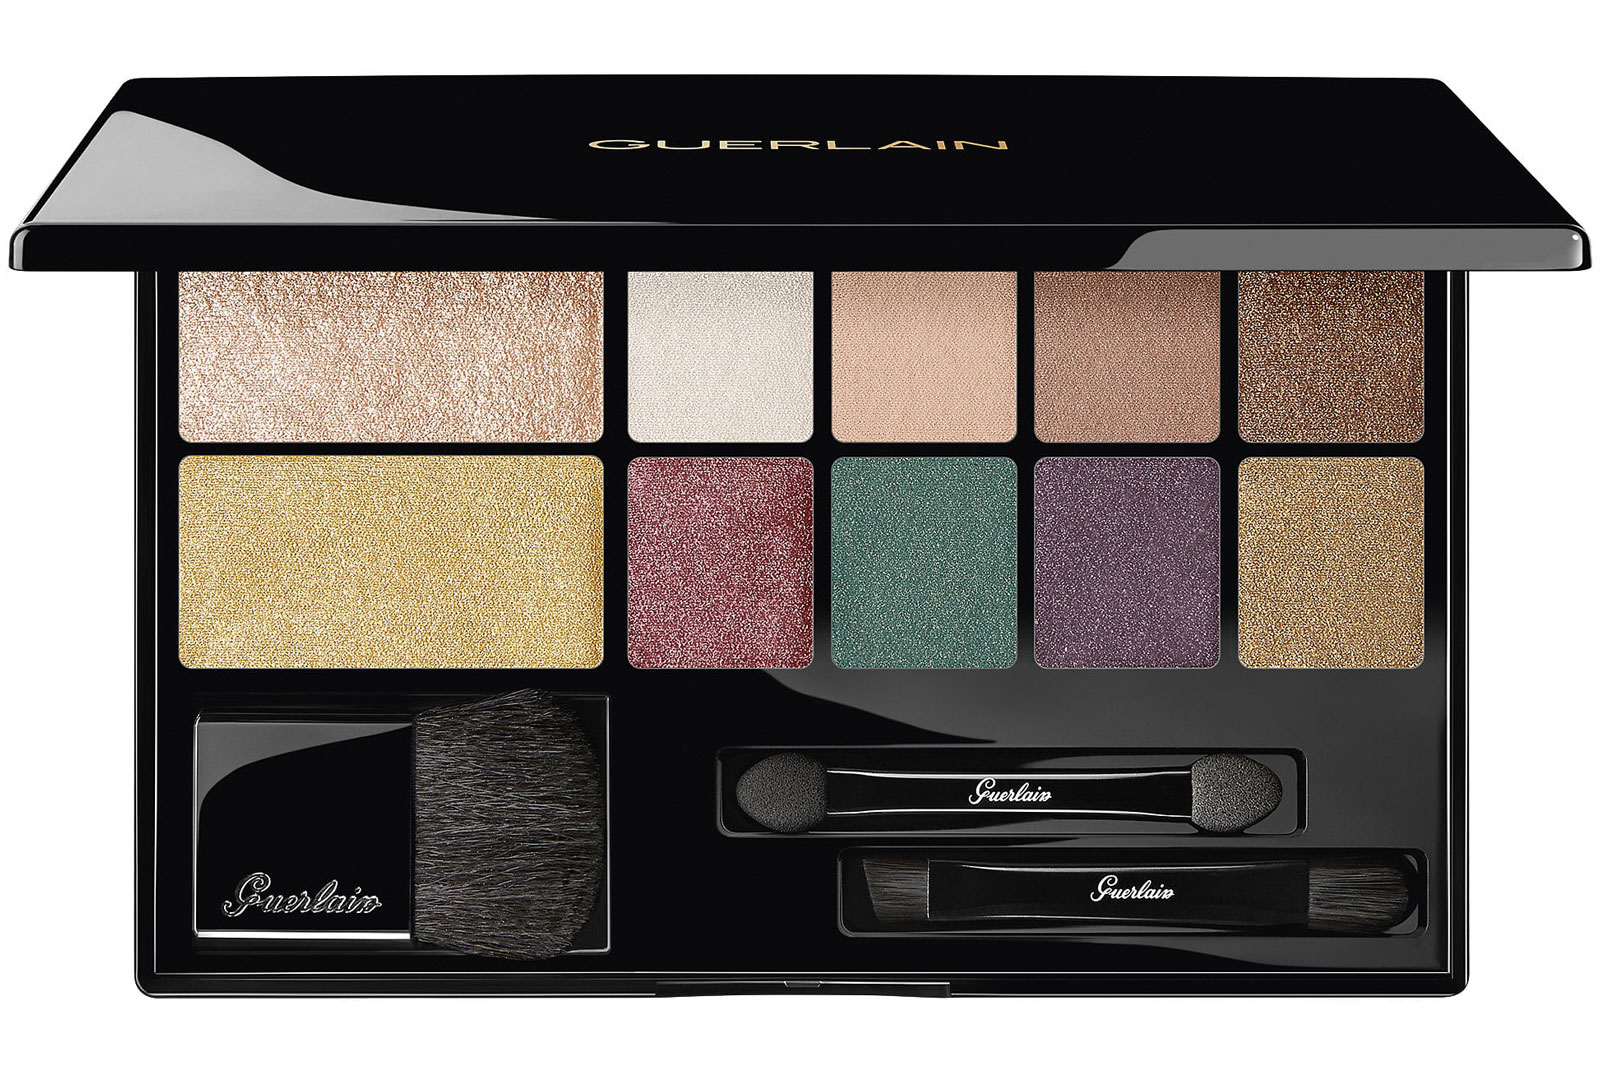 Guerlain-190th-Anniversary-All-Eyes-On-You-Palette